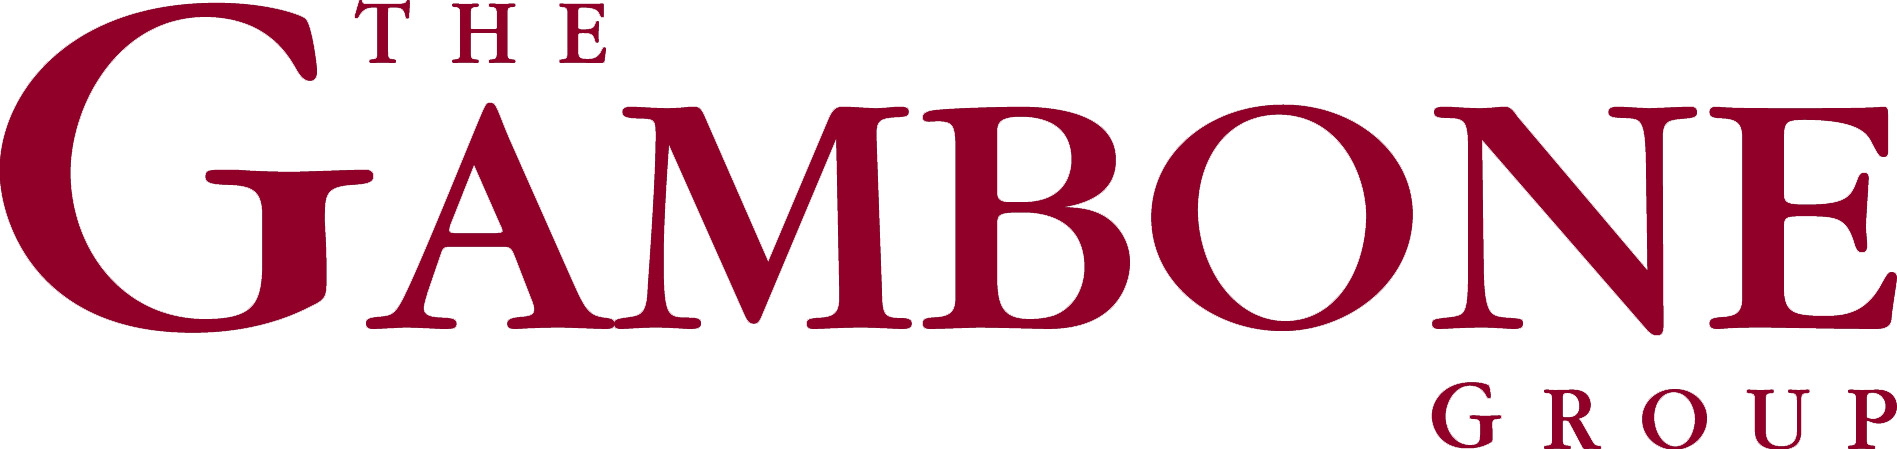 Gambone Group LOGO BURG.jpg